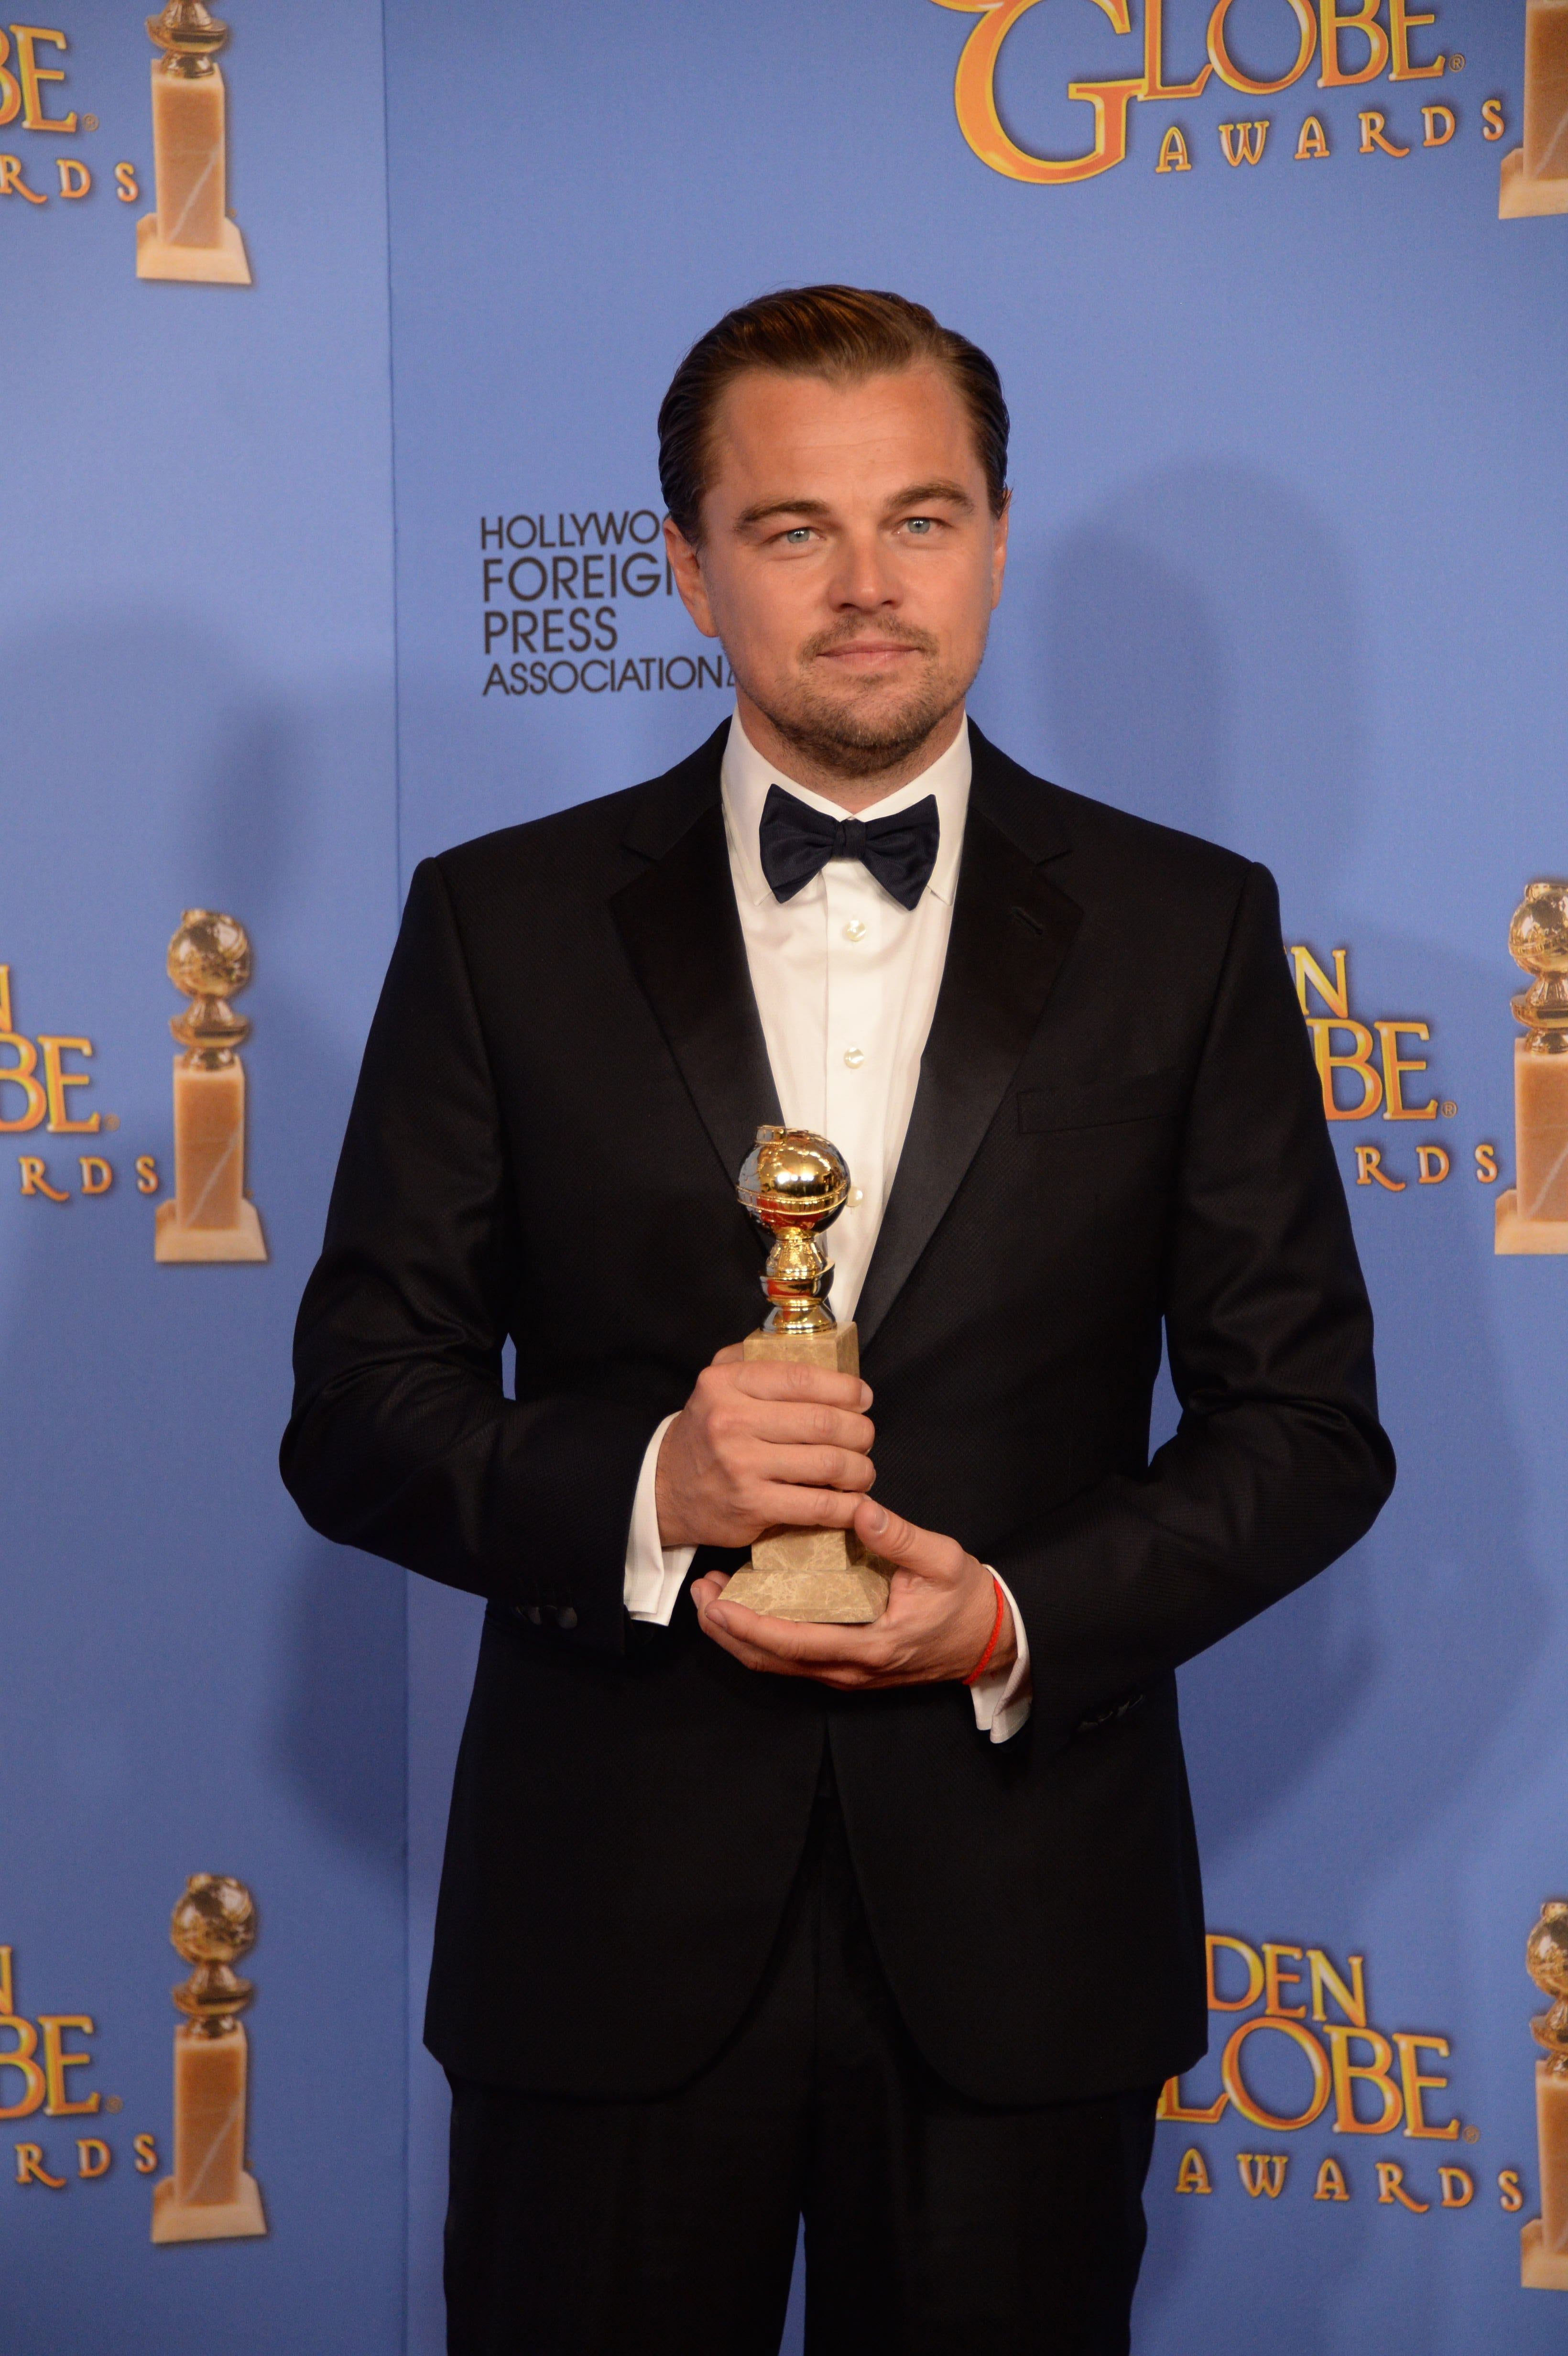 Golden Globe Award for Best Actress in a Motion Picture – Drama